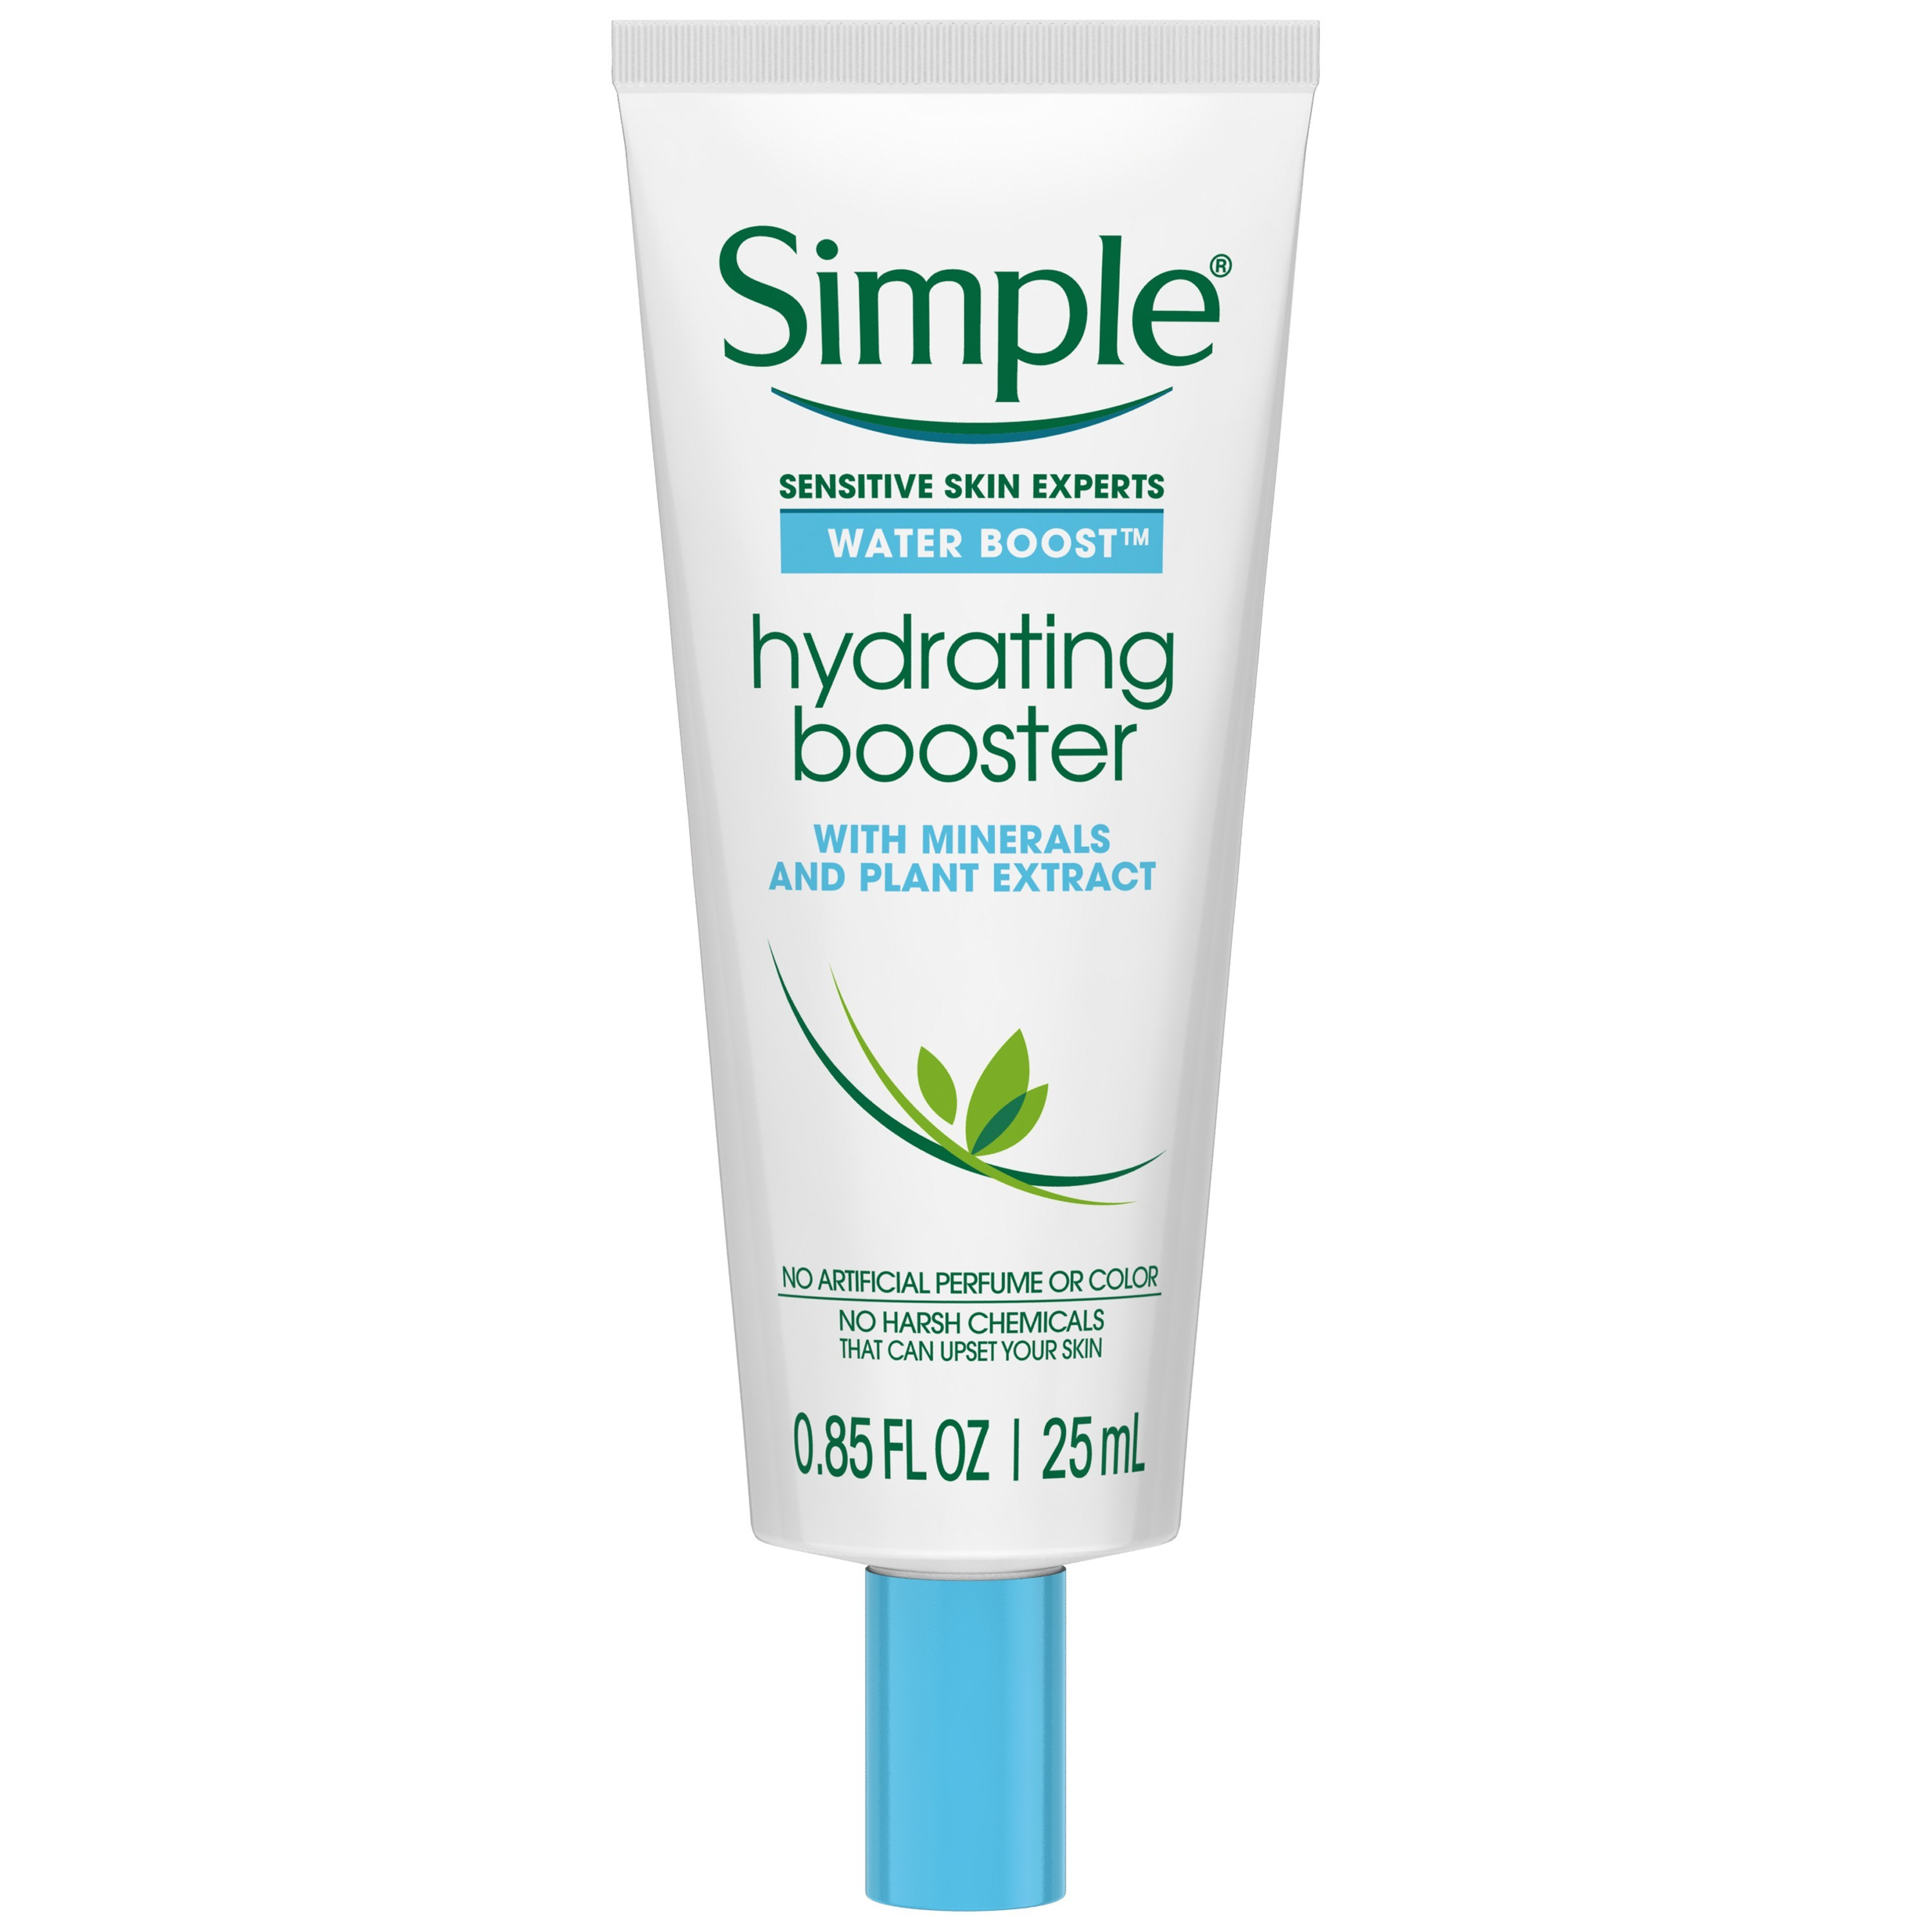 Simple Moisturizer & Sleeping Cream, 33,/3,313 Cases, Ext. Retail $422,981, Newville, PA